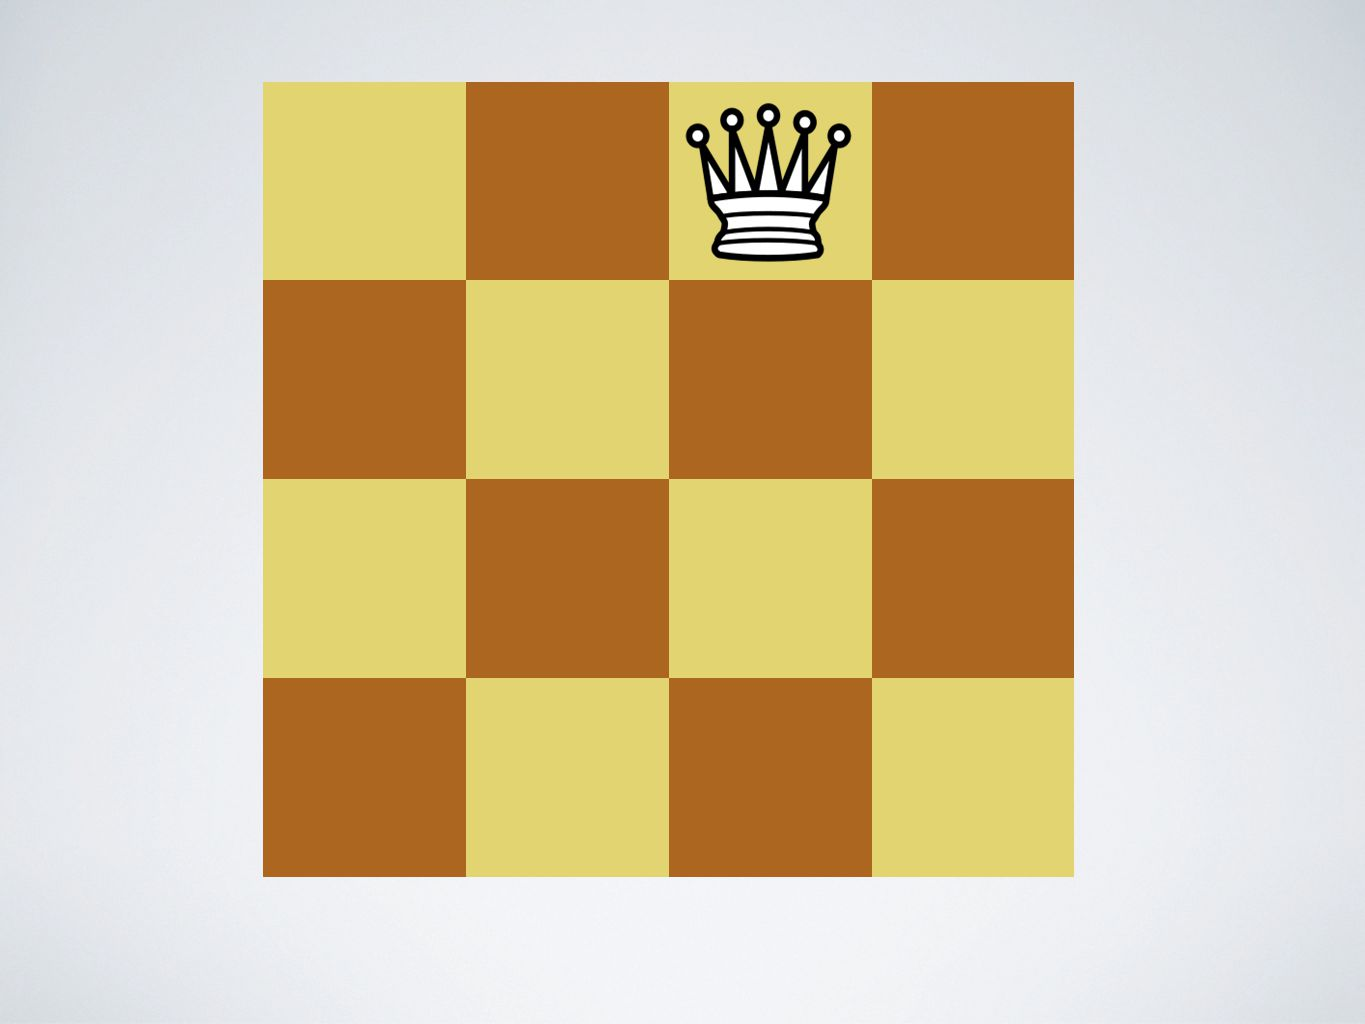 F1. Game Rule Violation: The queen takes the pawn.